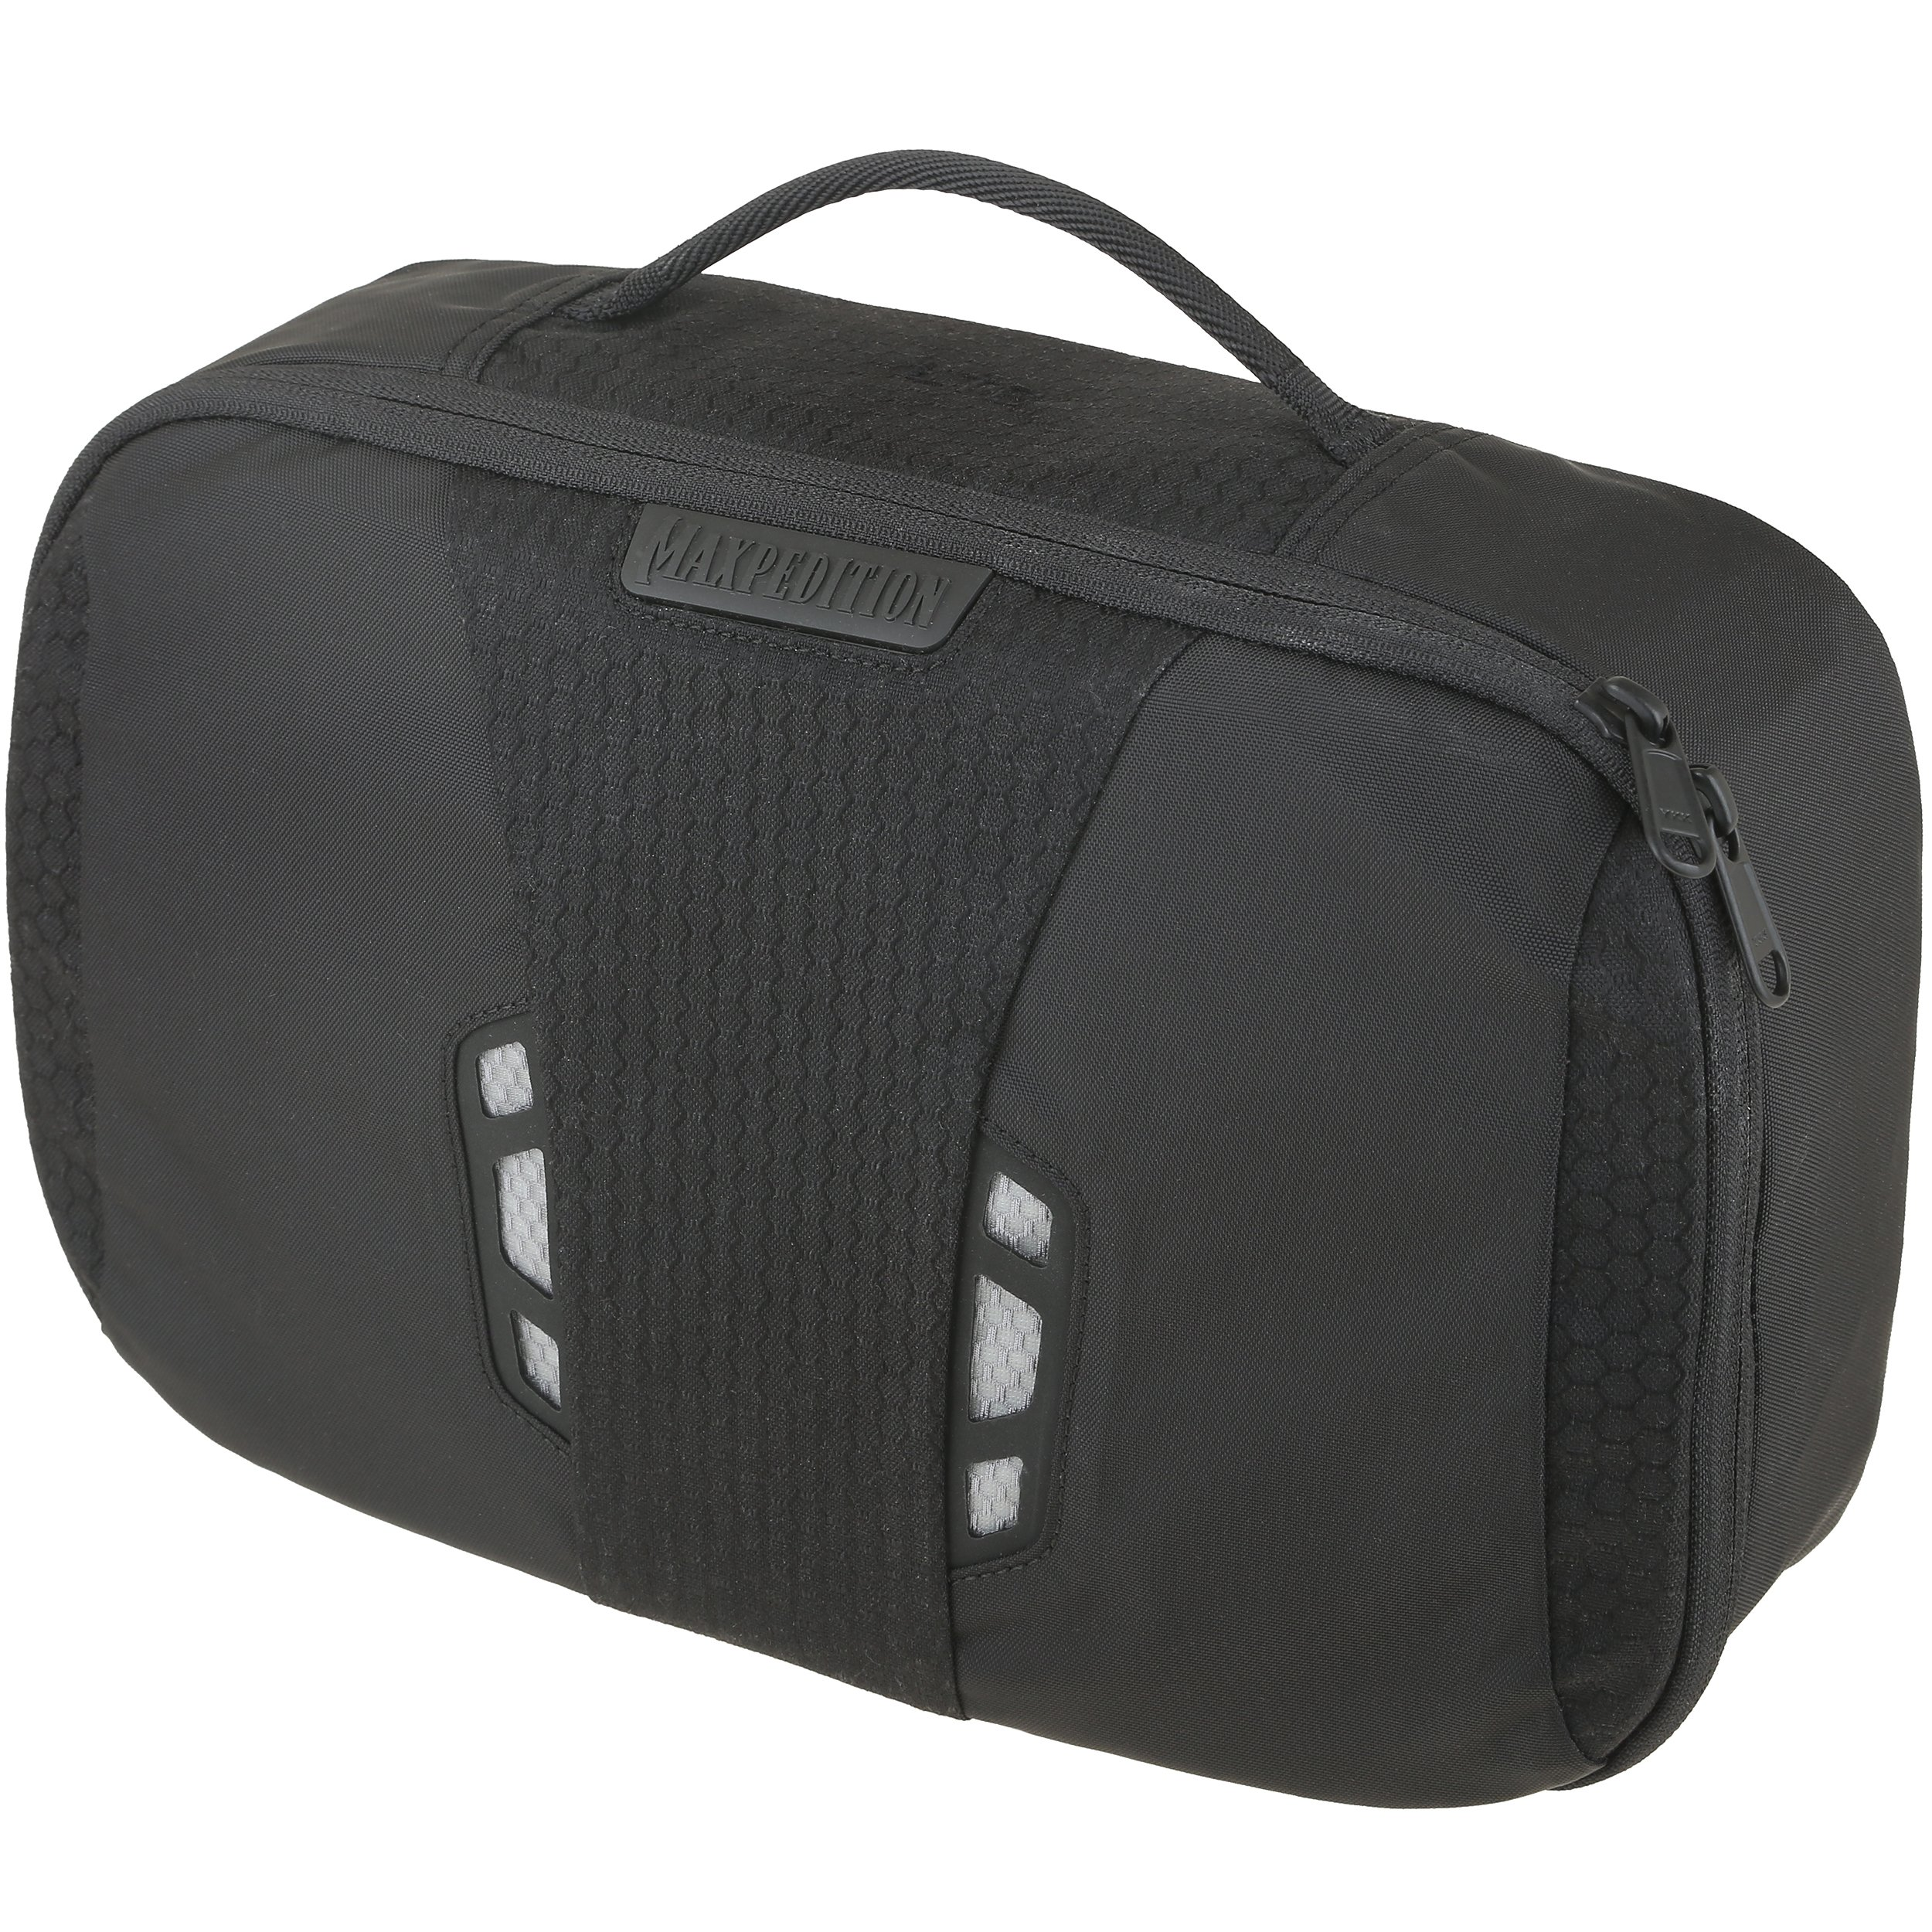 Maxpedition Lightweight Toiletry Bag, Black by Maxpedition